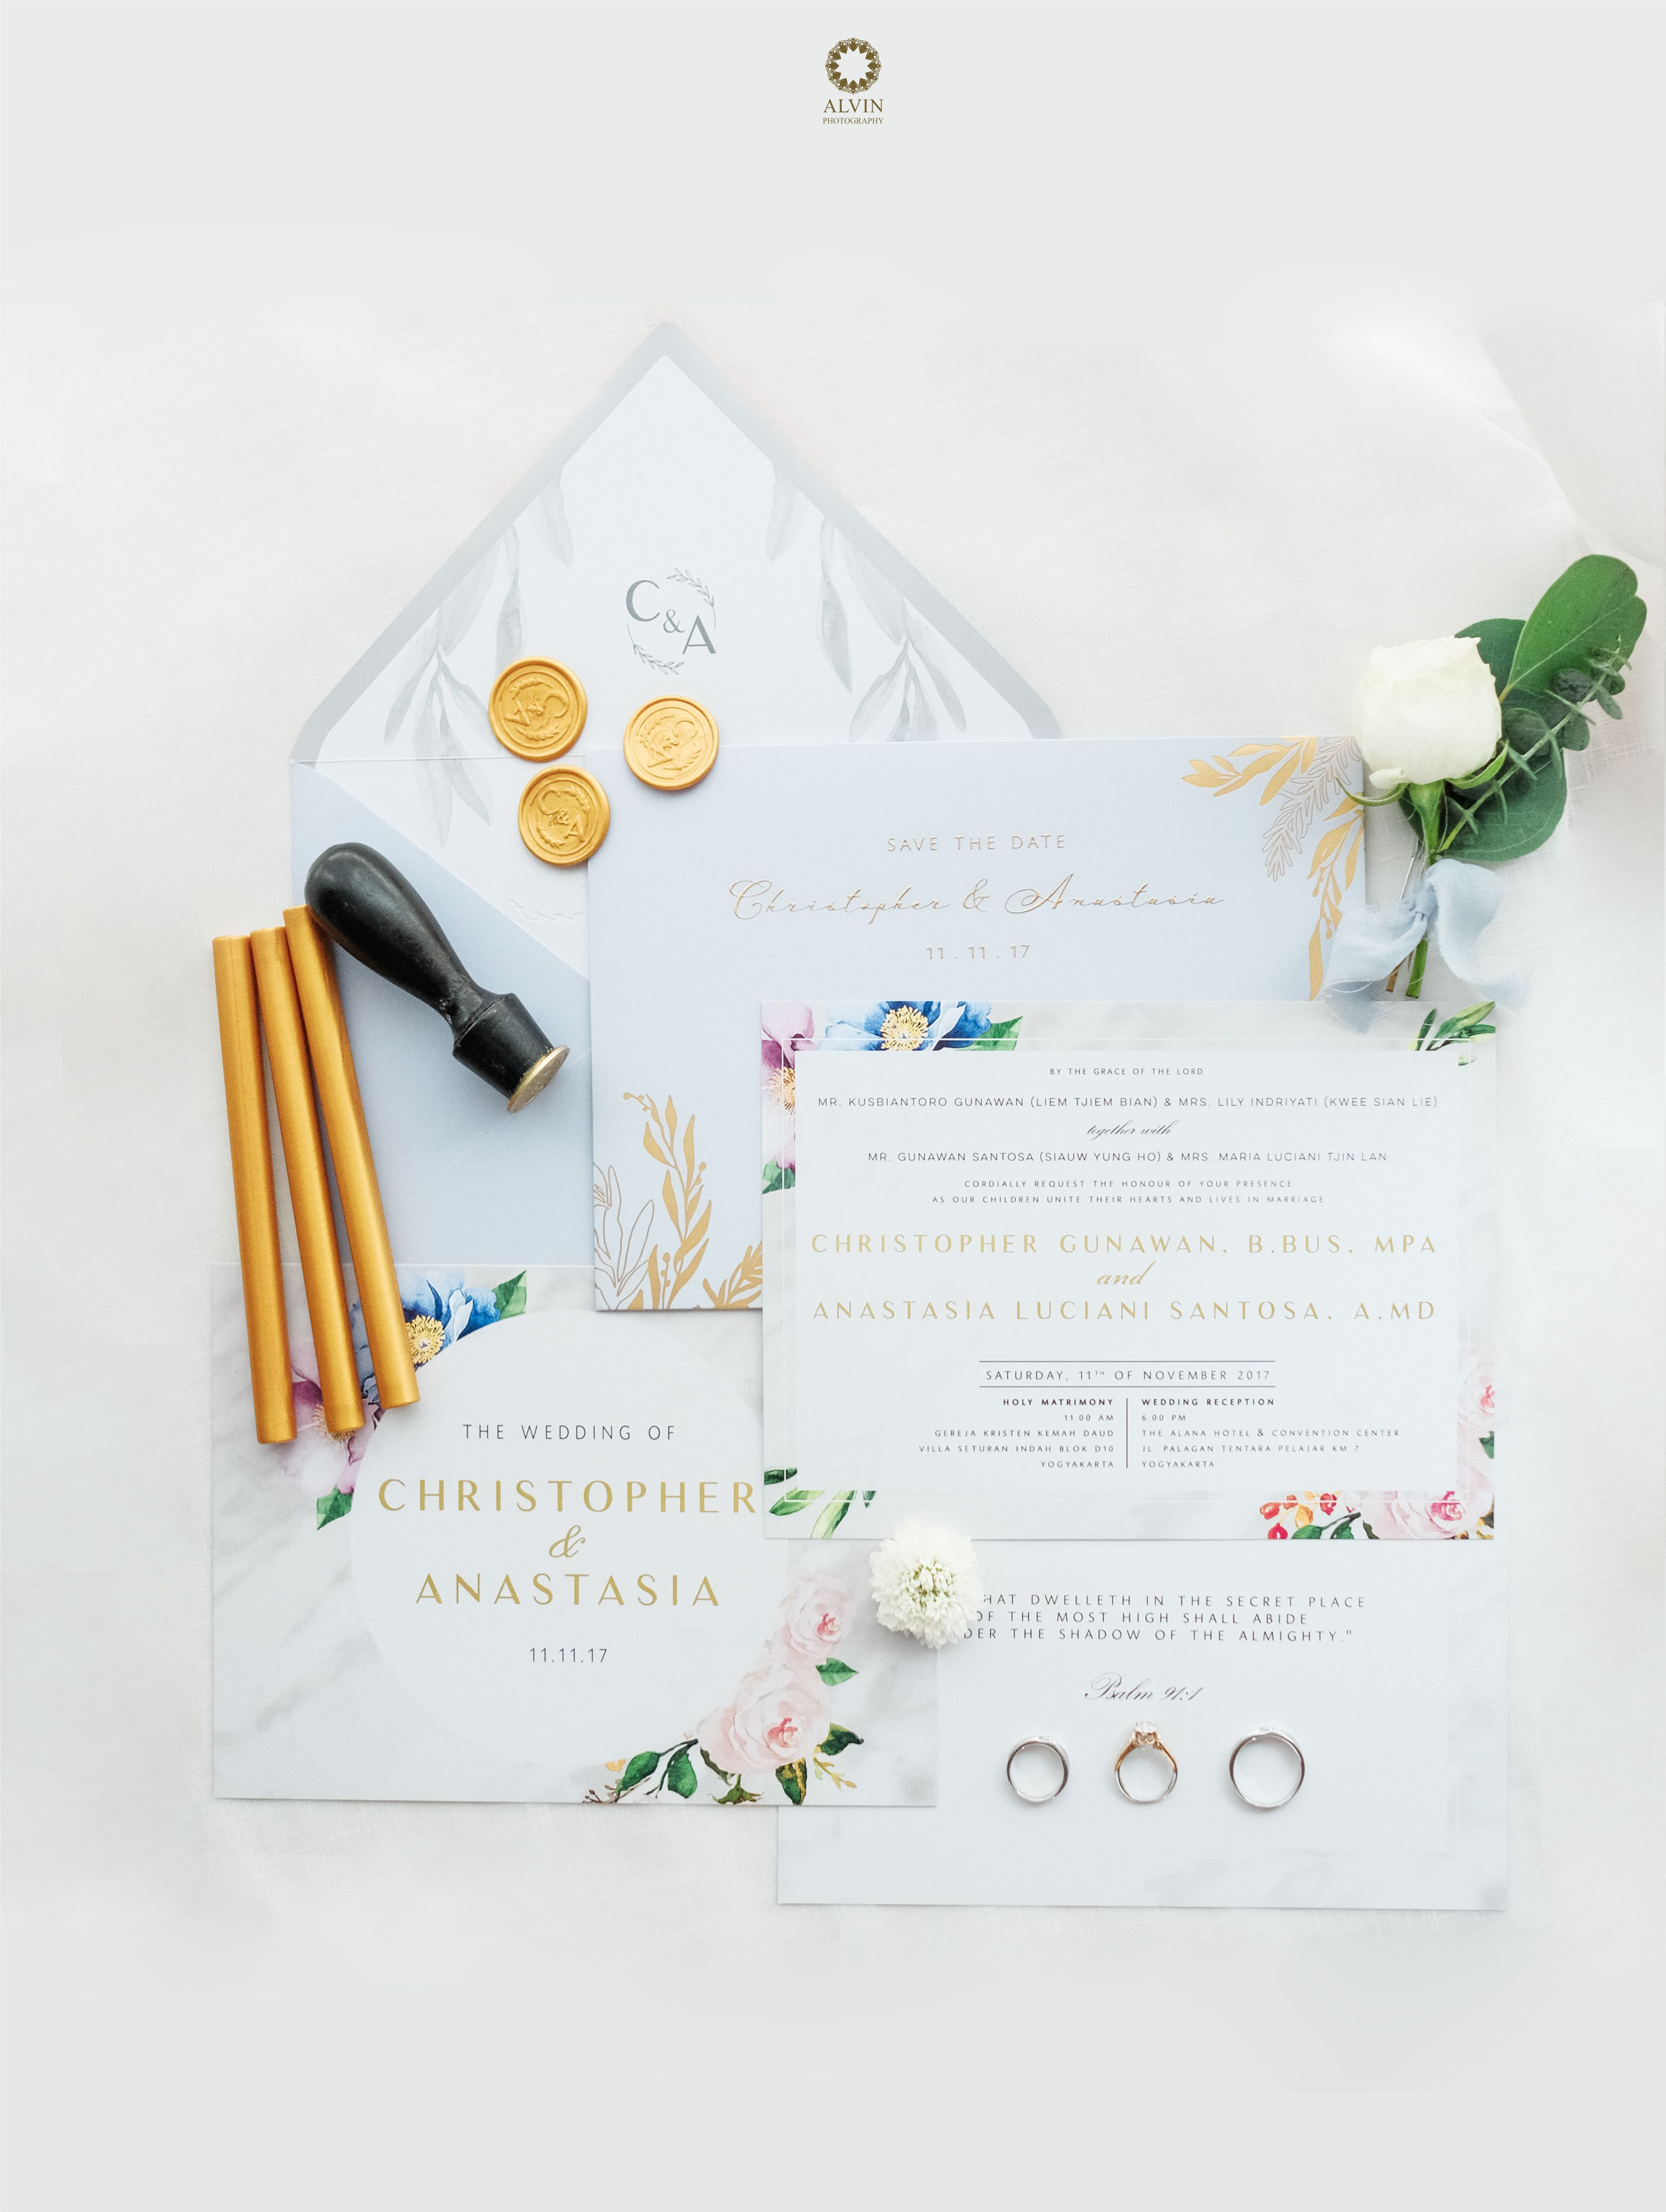 2b : Vanilla Twilight with Chic Style in Your Big Day